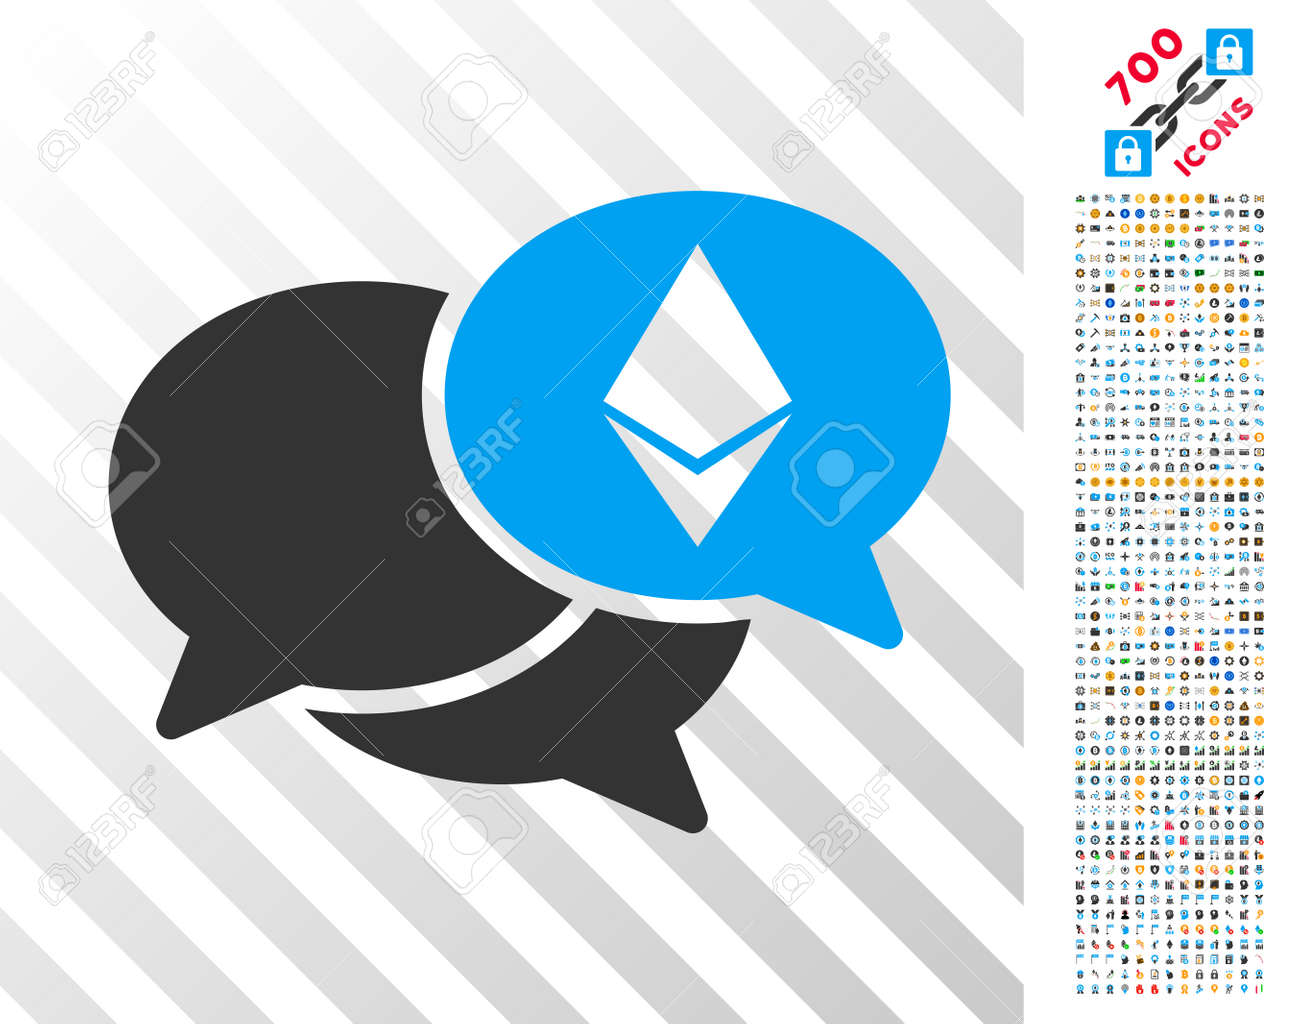 What Is The Ticker Symbol For Bitcoin Amd Miner Software Ethereum